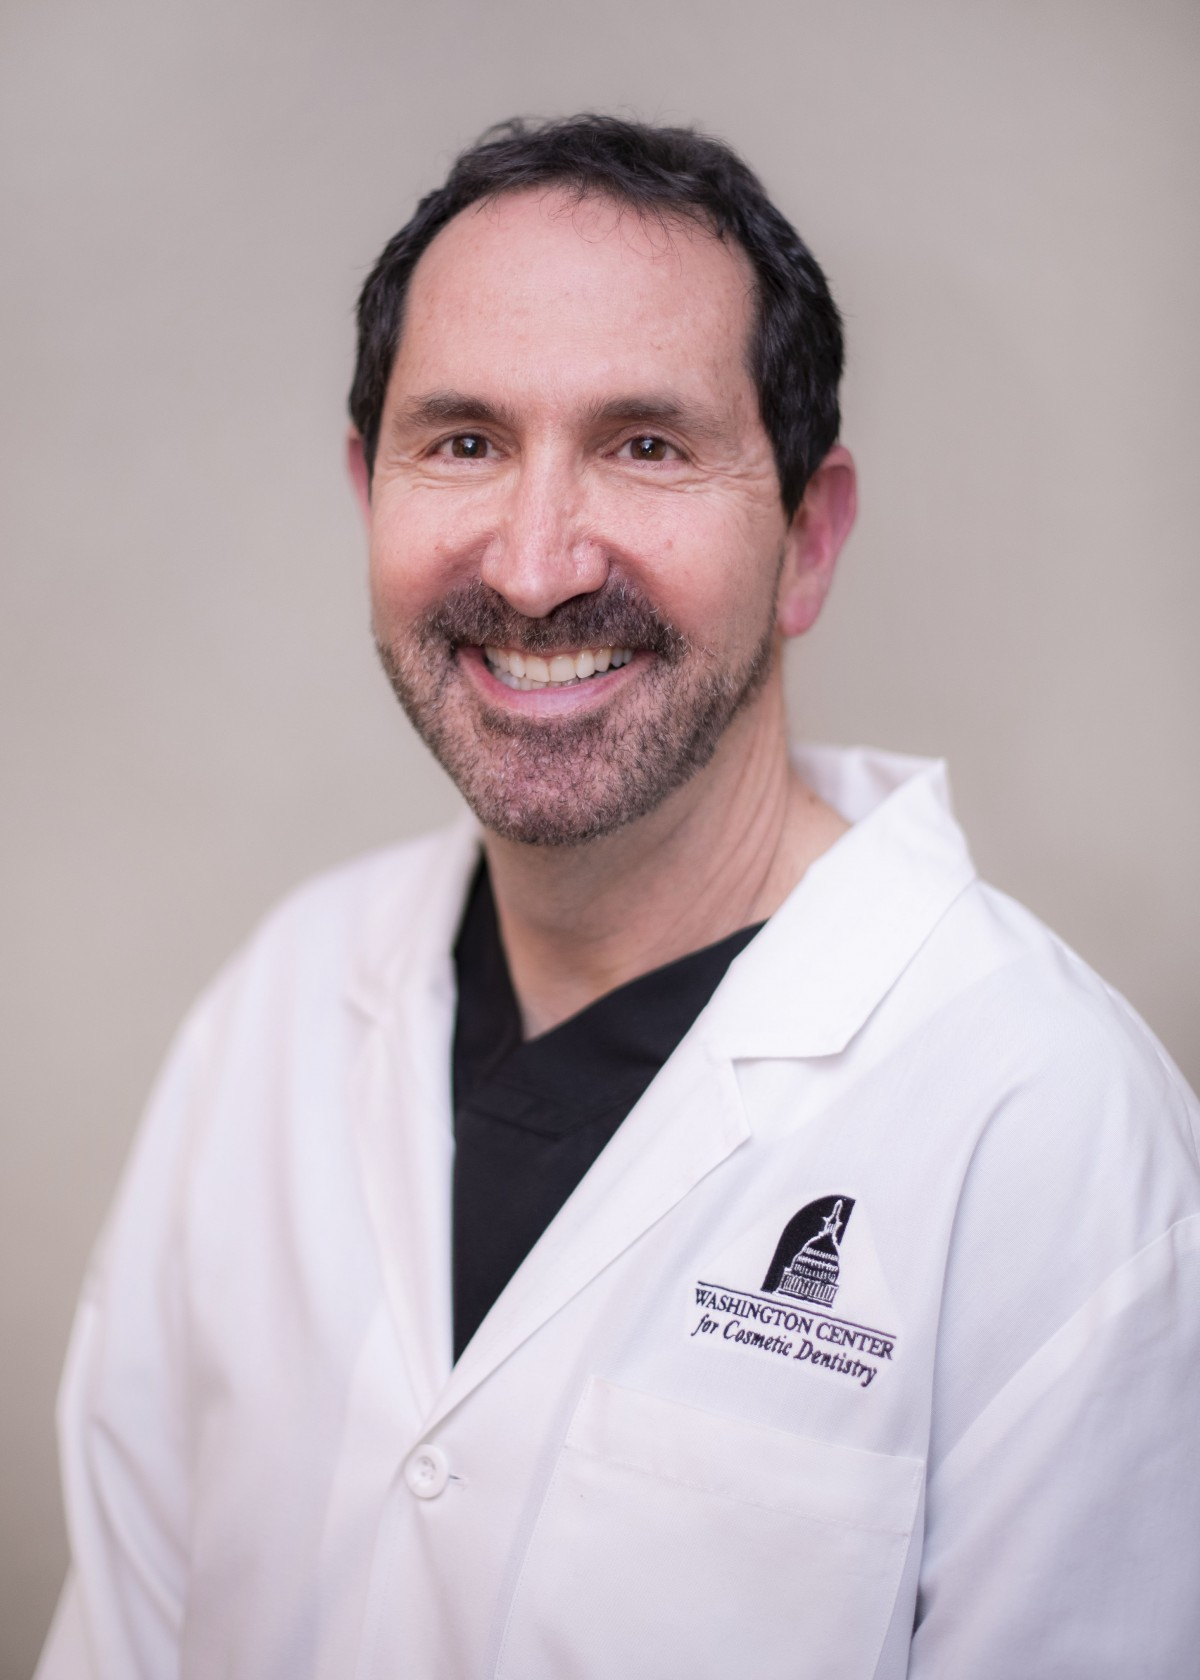 Cosmetic Dentist Dr. Michael Pollowitz Washington Center For Cosmetic & Family Dentistry